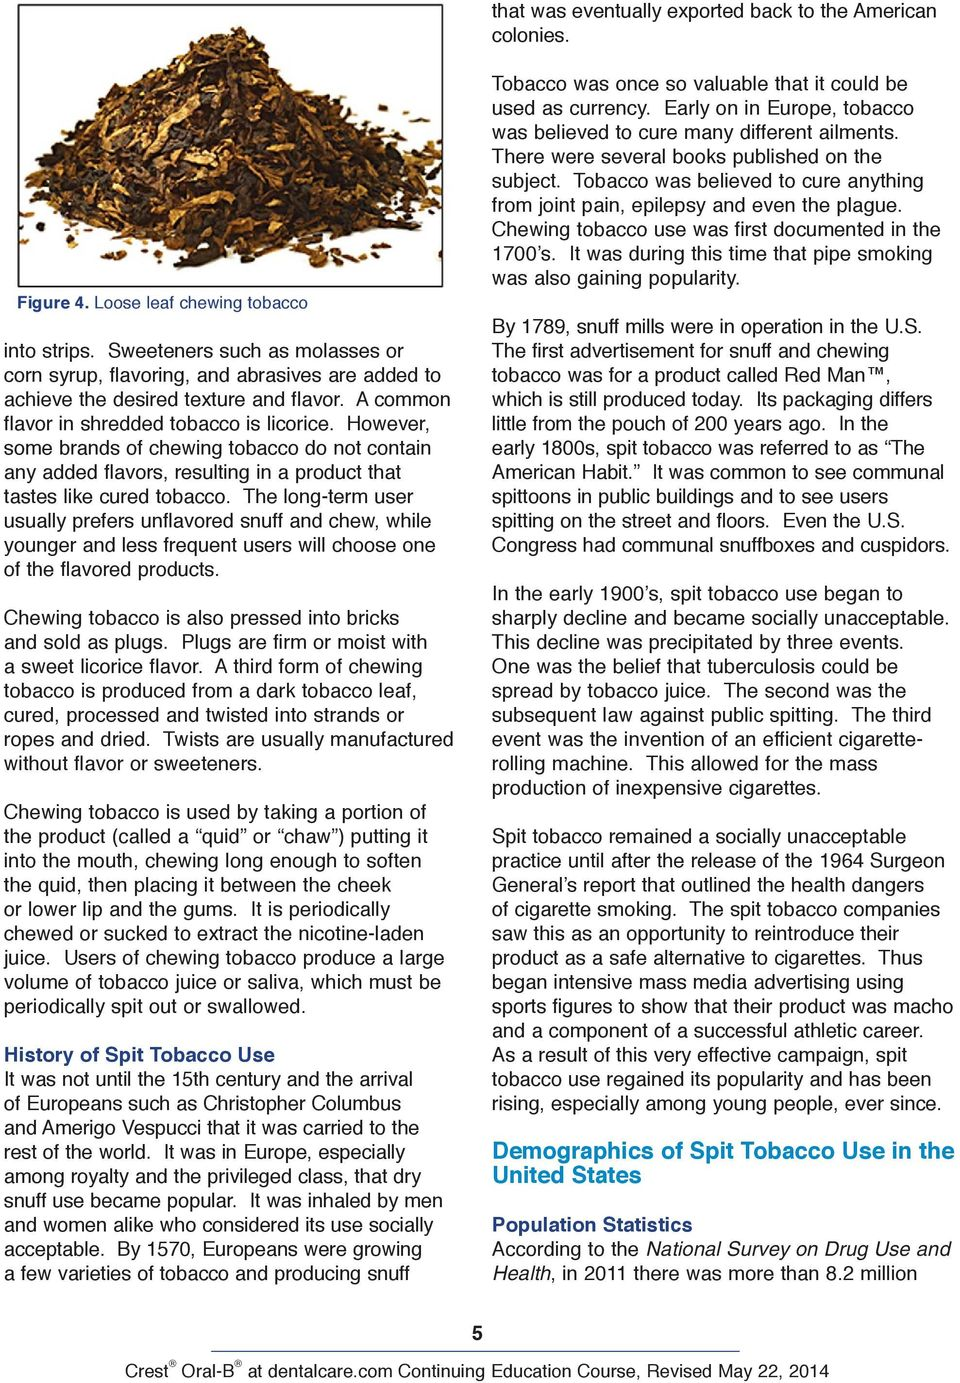 Understanding the Dangers and Health Consequences of Spit